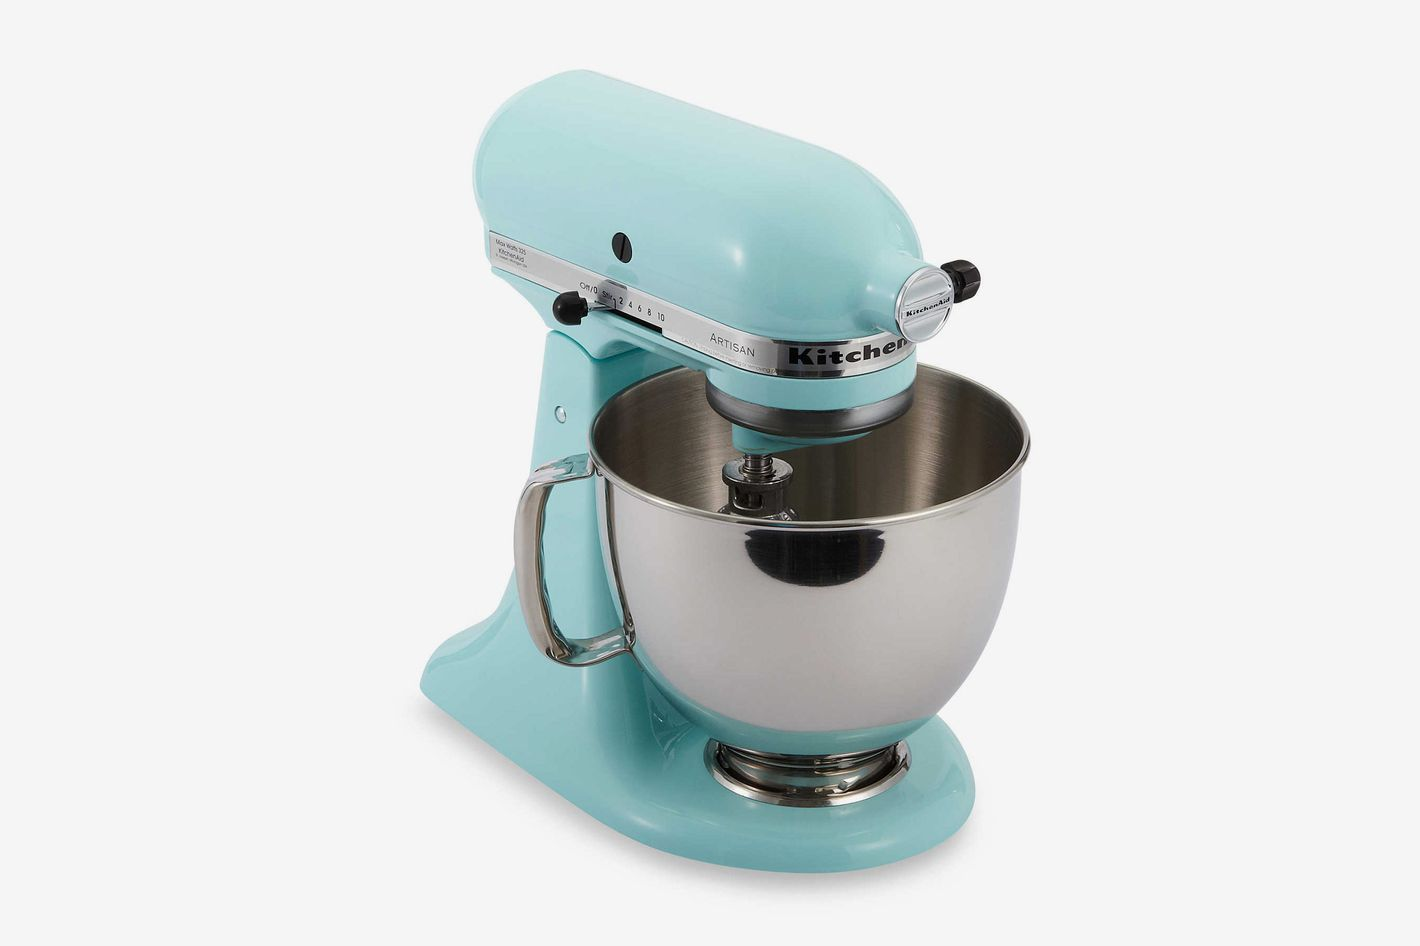 KitchenAid Artisan 5 qt. Stand Mixer in Ice